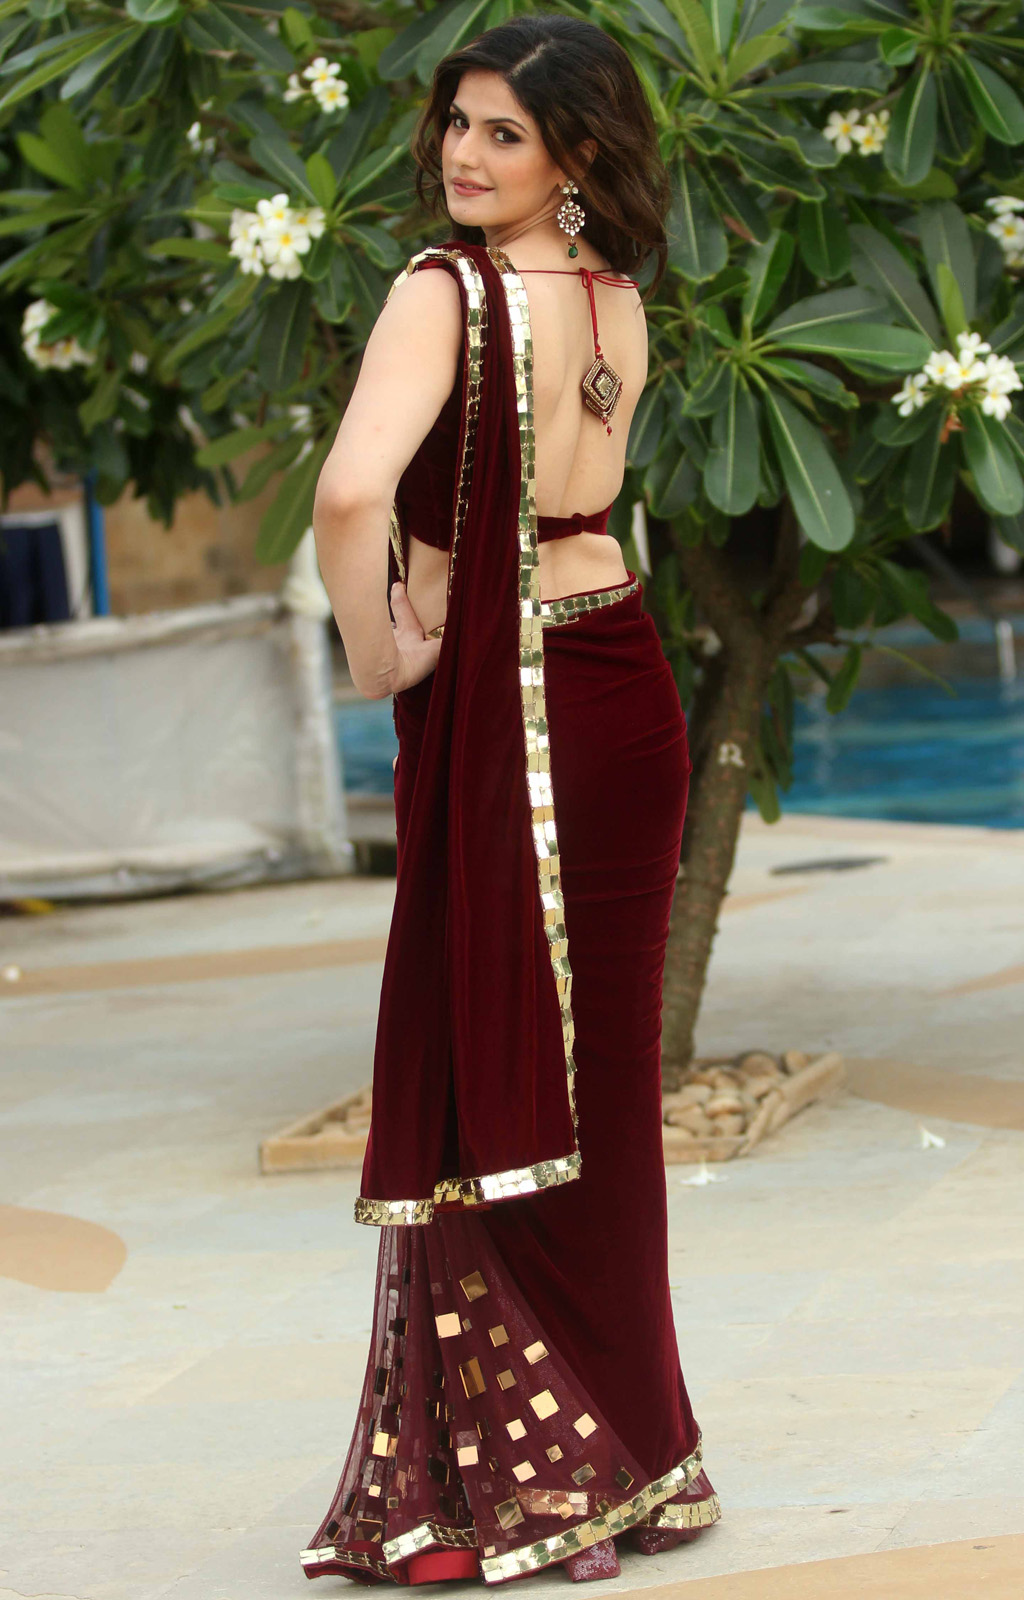 Zarine Khan Hot Photos In Red Saree At Indian Wedding -7457